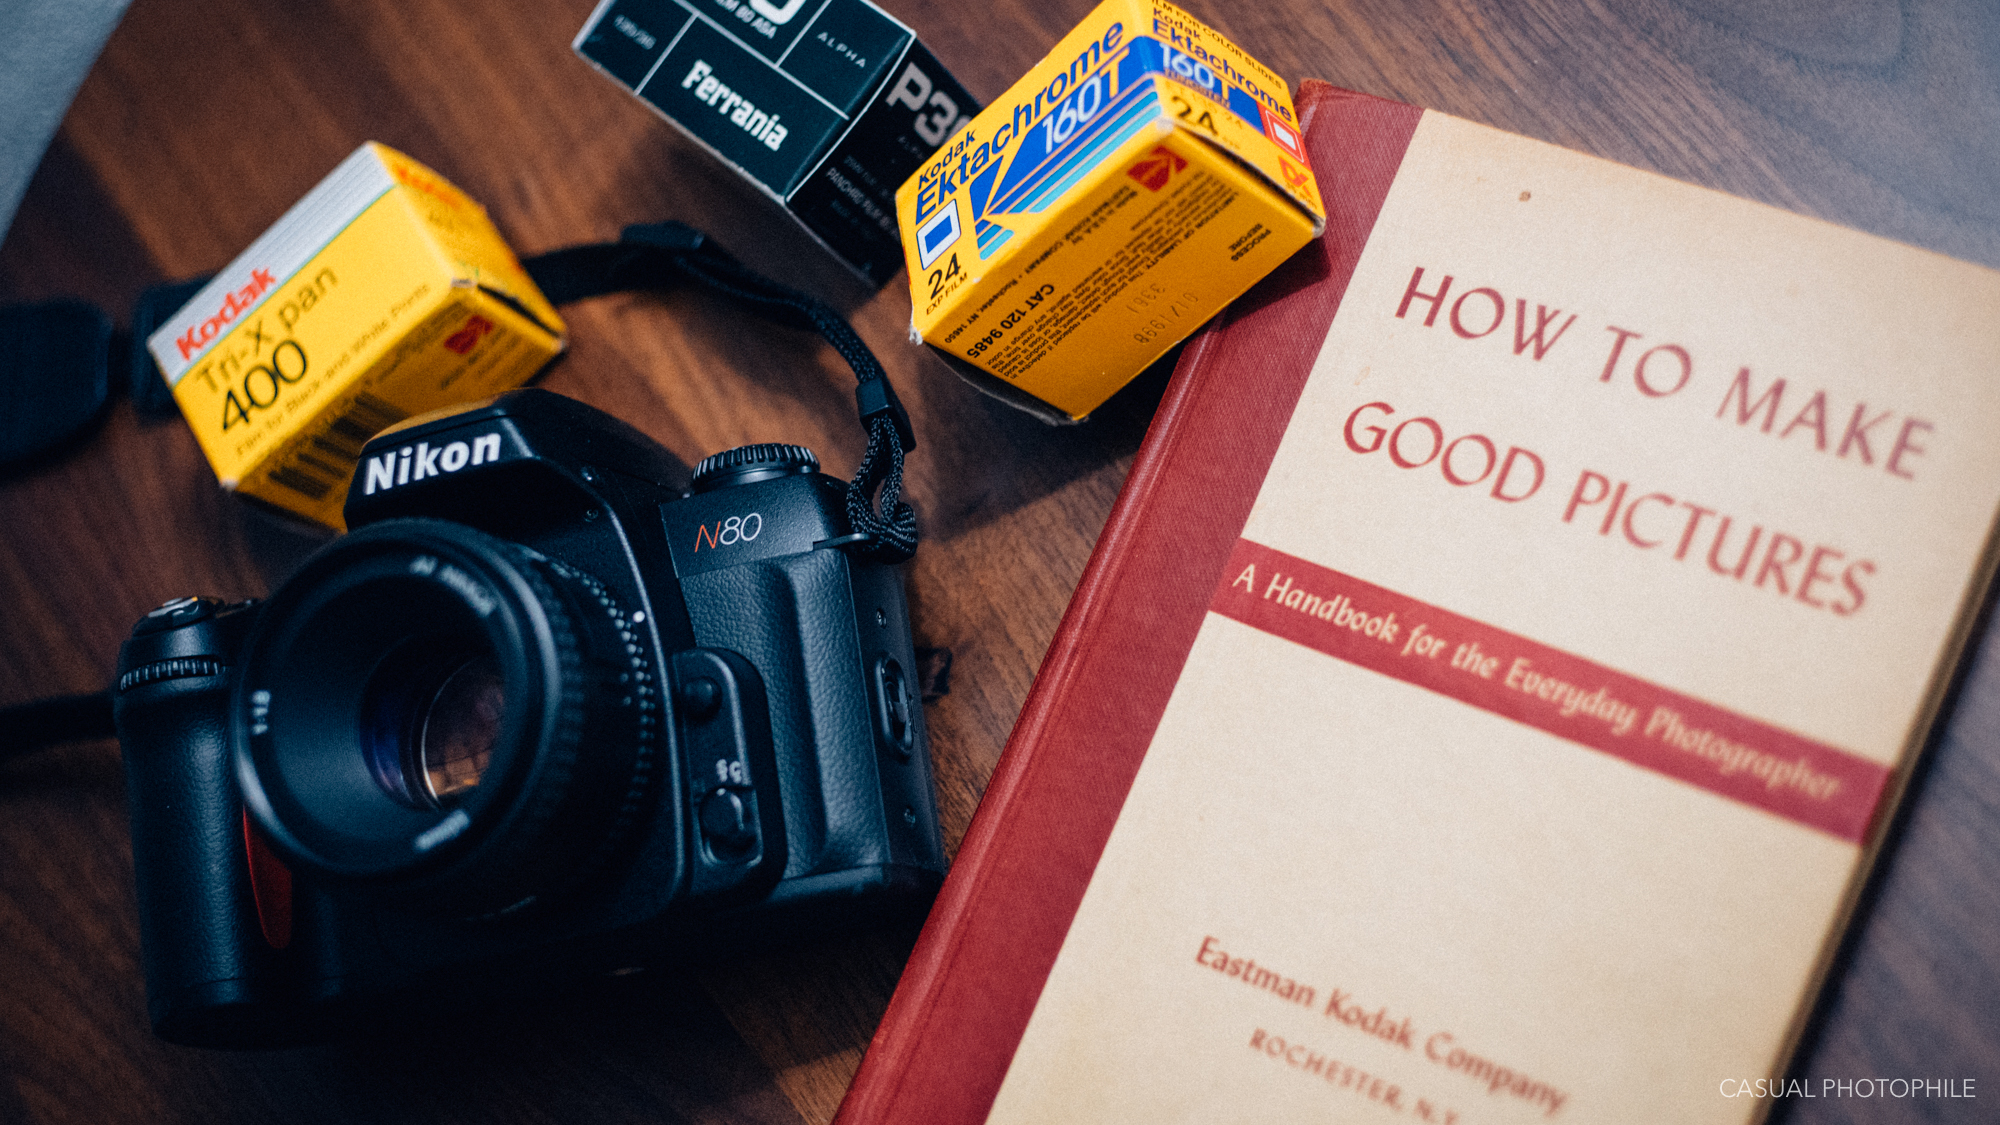 how to take good pictures with camera